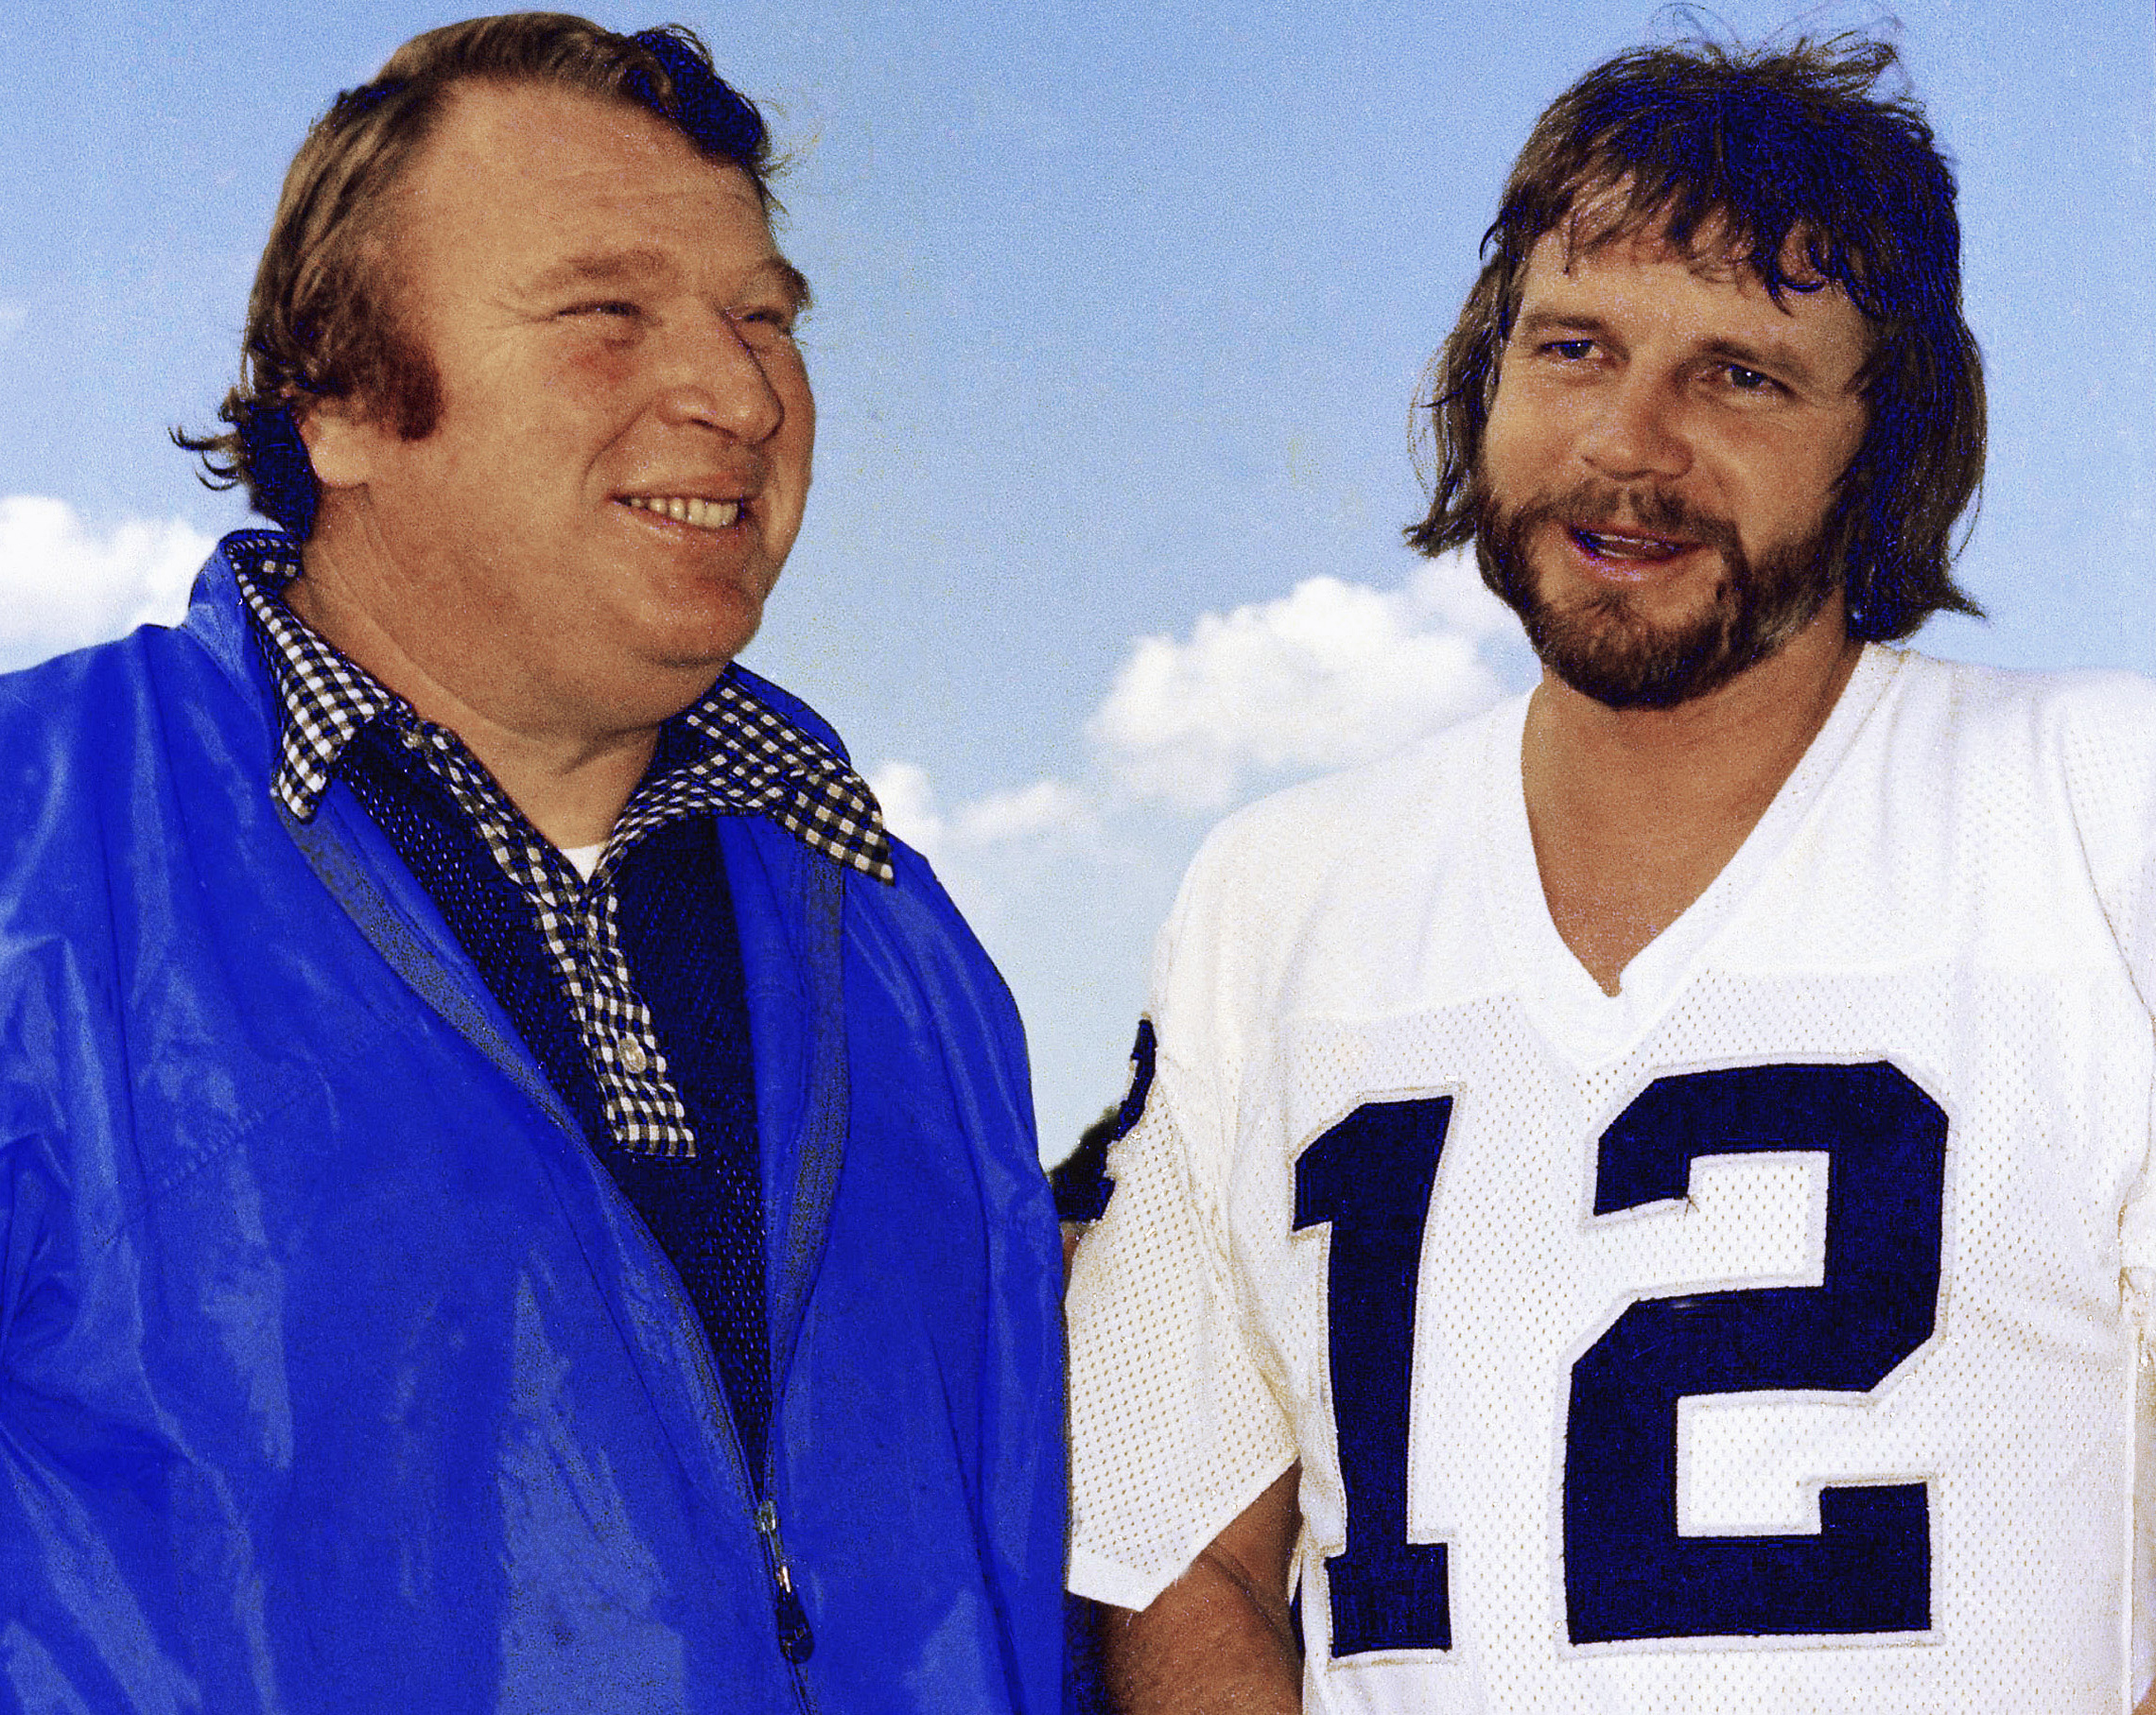 FILE - In this Jan. 4, 1977, file photo, Oakland Raiders quarterback Ken Stabler, right, talks with coach John Madden in Oakland, Calif. Stabler, who led the Raiders to a Super Bowl victory and was the NFL's Most Valuable Player in 1974, has died as a res